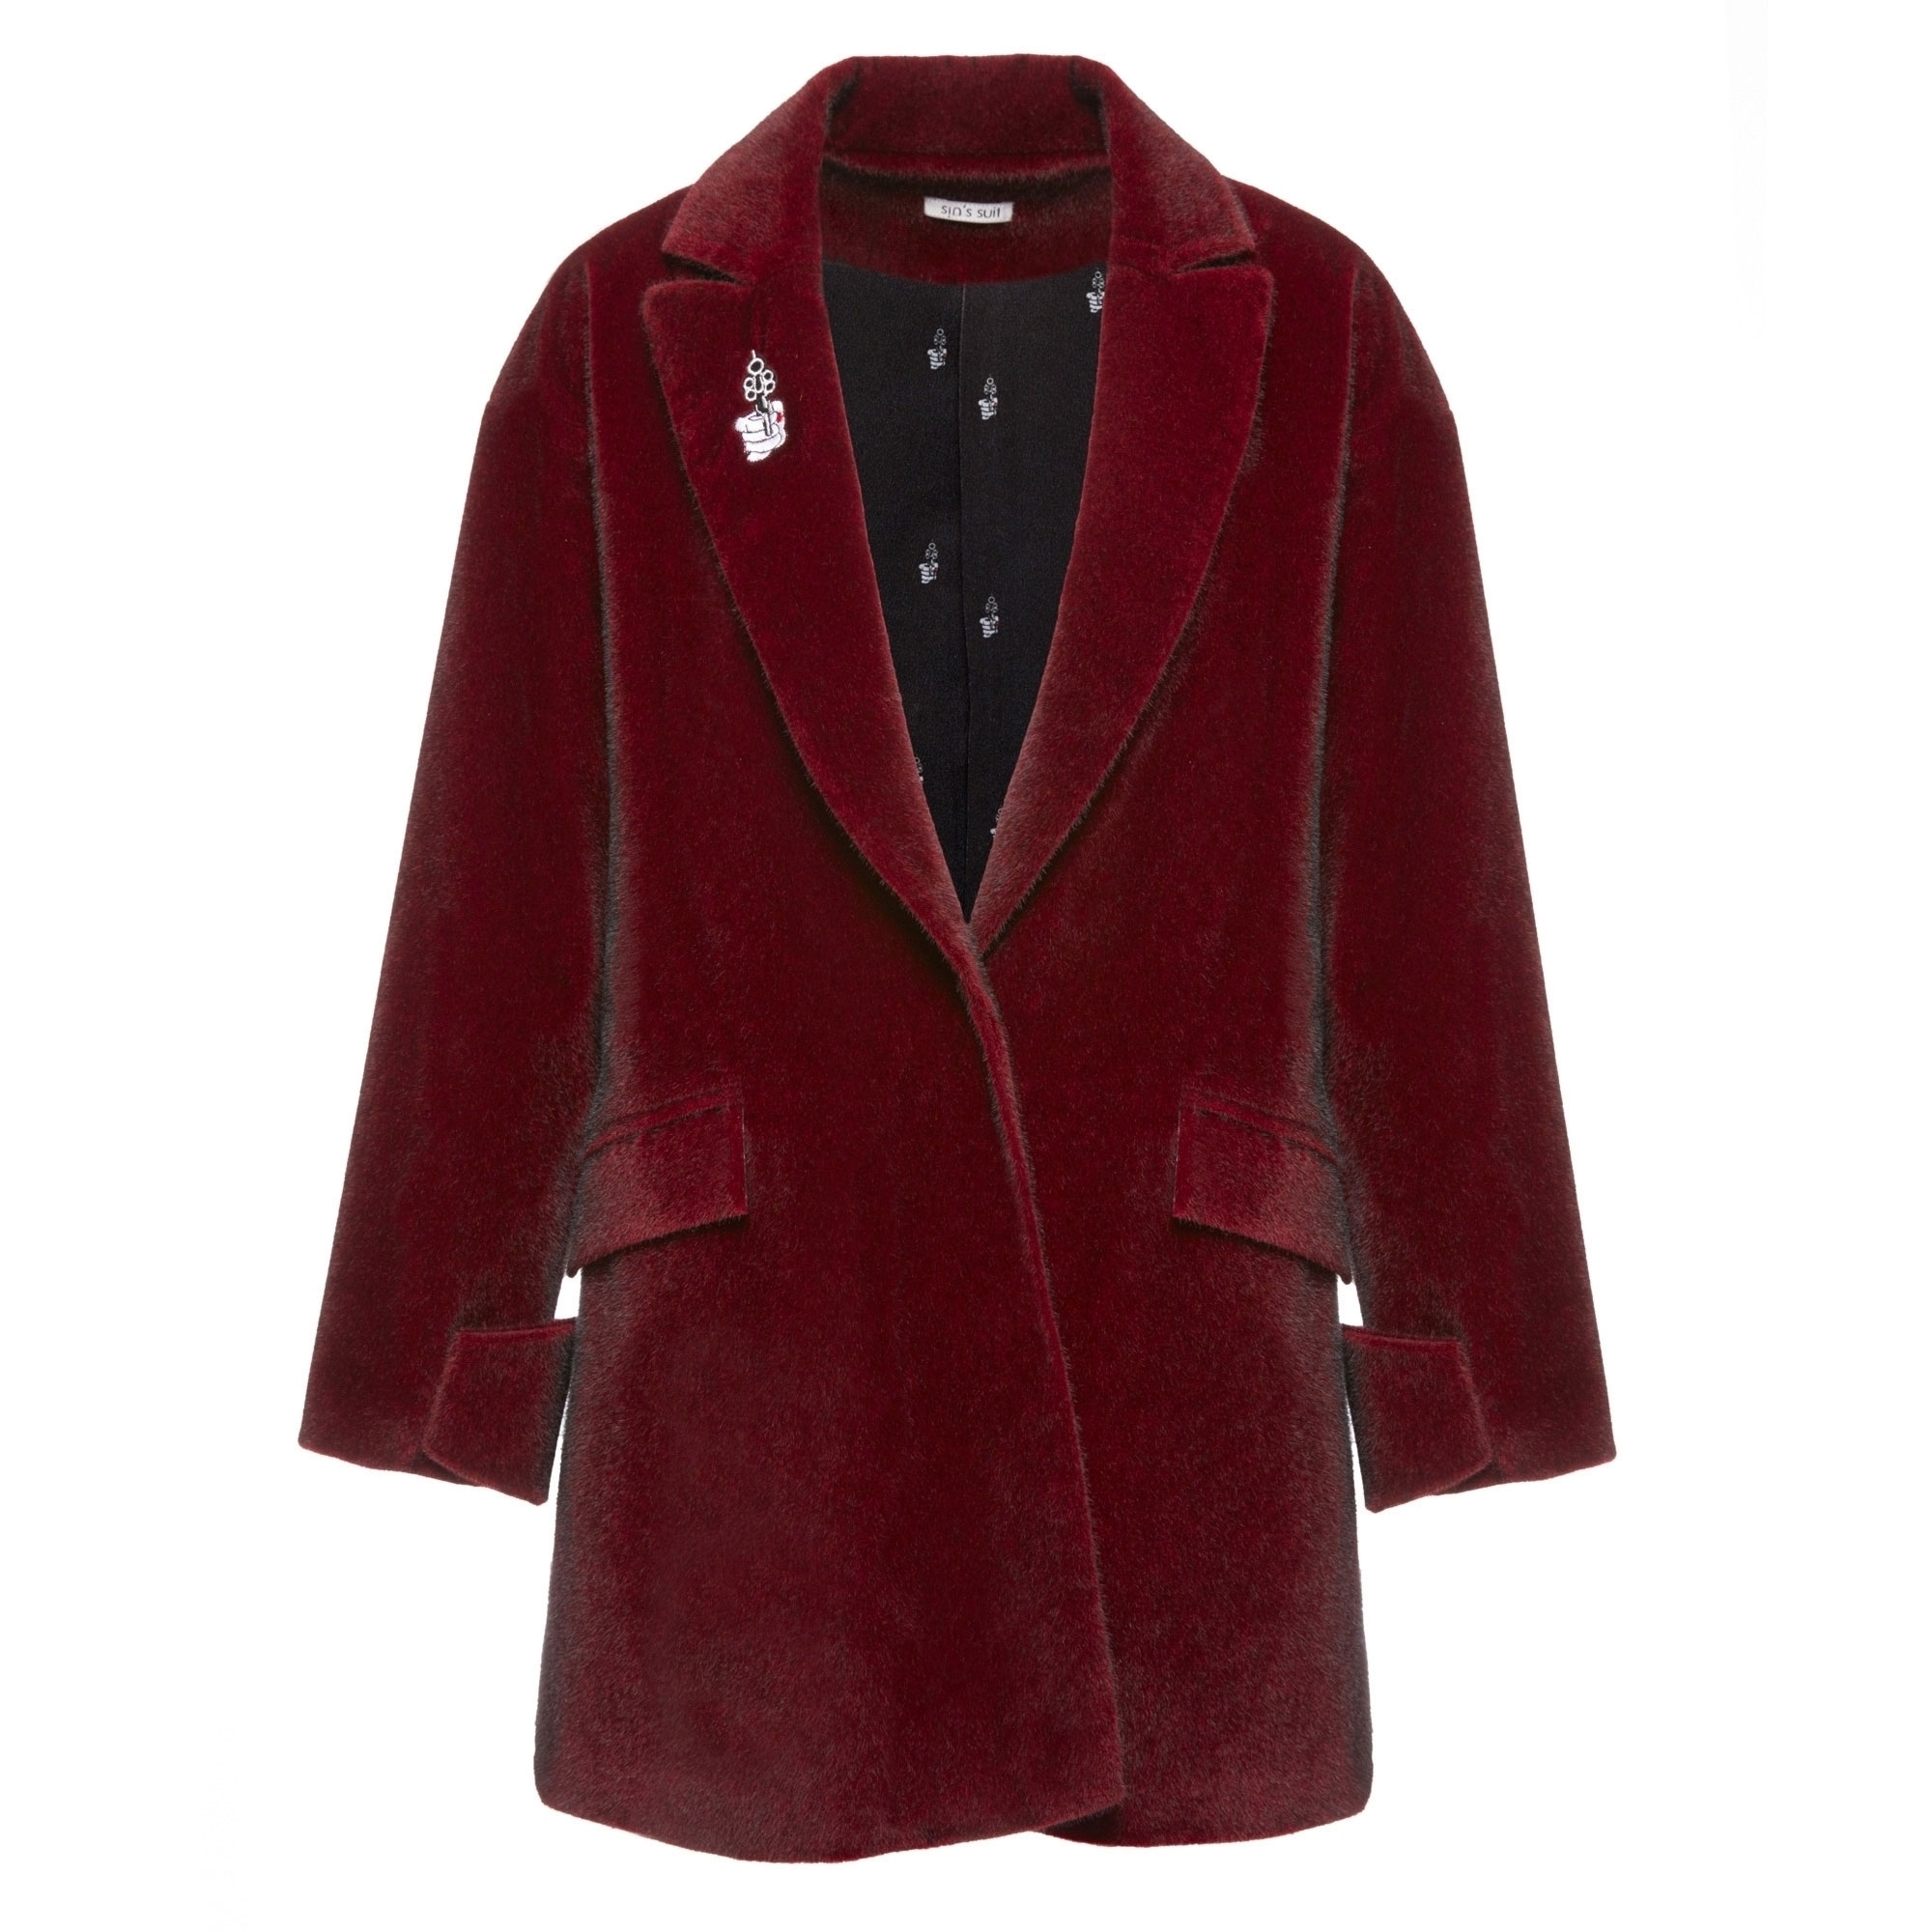 SIN S SUIT Wine Red Faux Fur Coat - WOMEN from Fashion Crossover ... cc36643ef